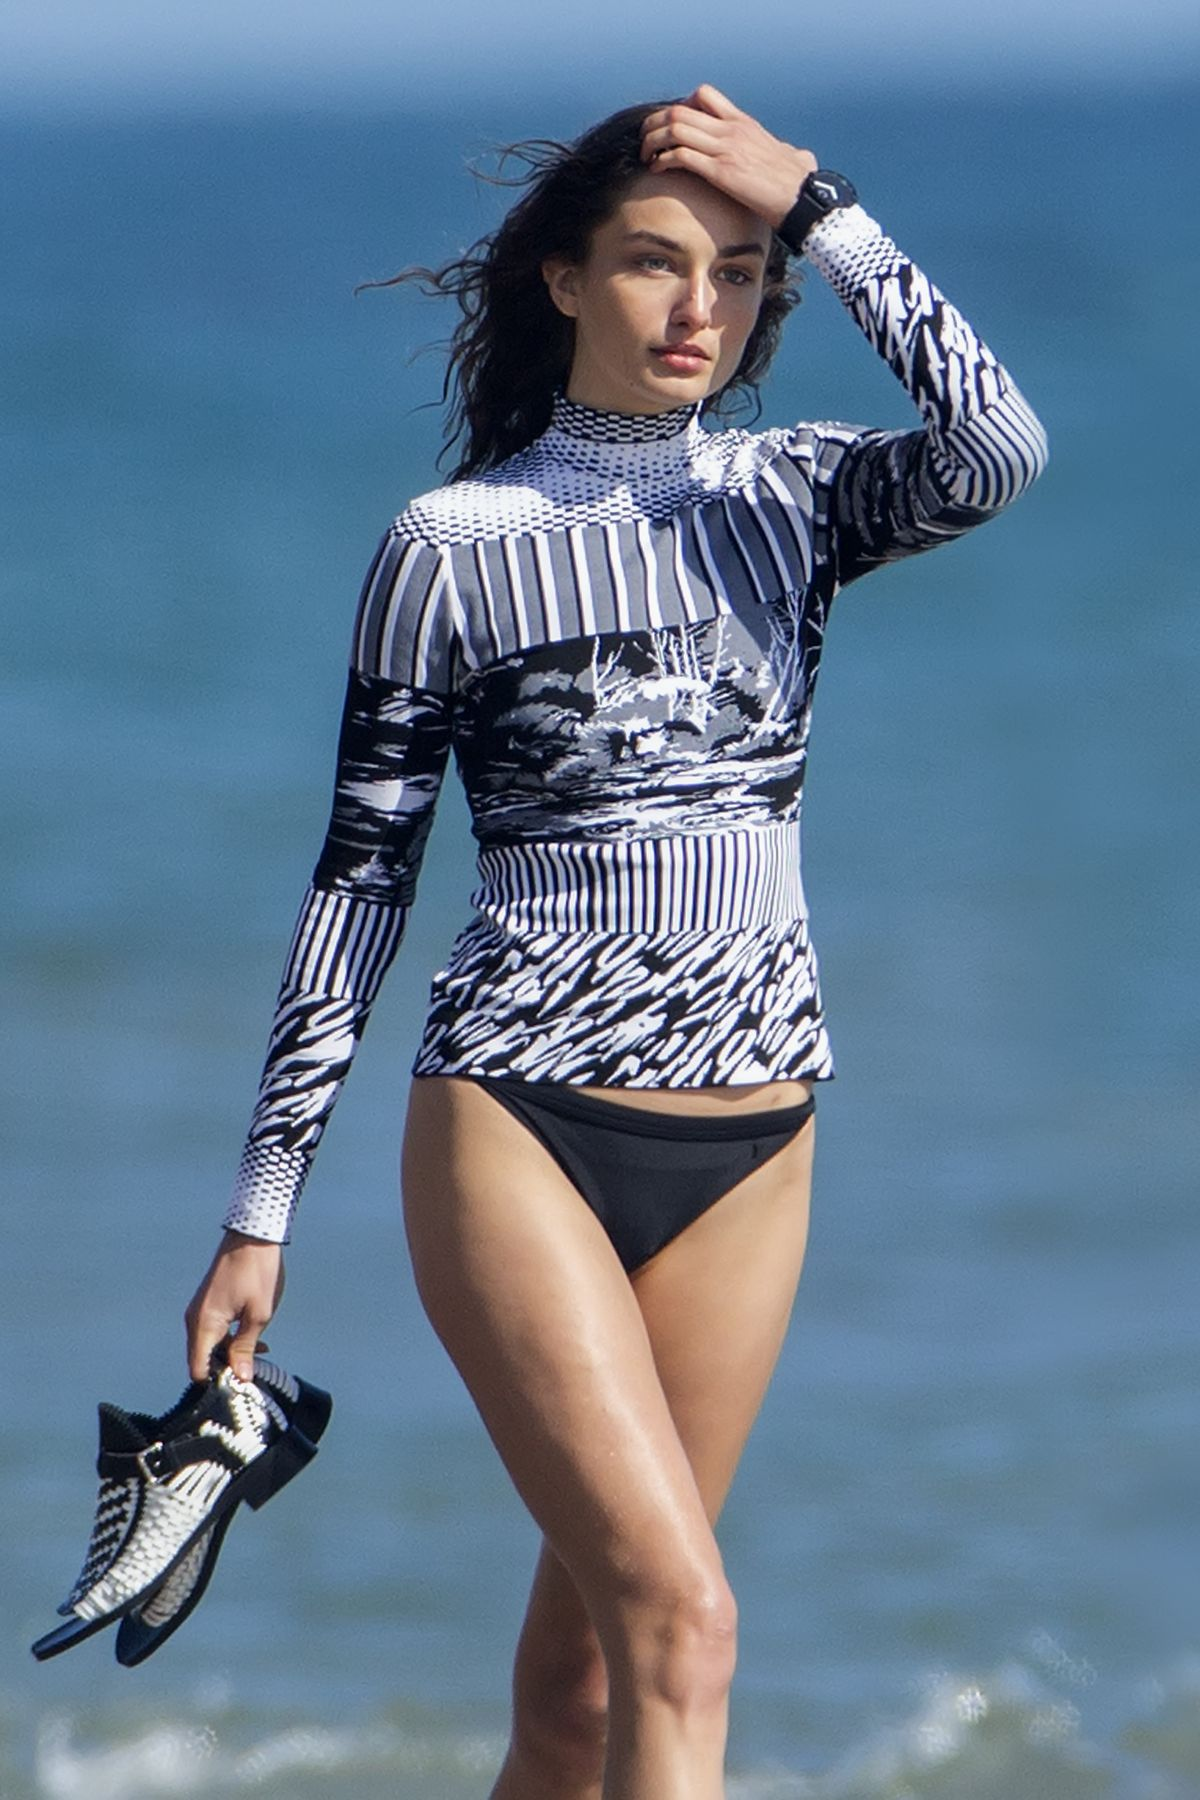 ANDREEA DIAONU at Vogue Photoshoot on the Beach in Malibu